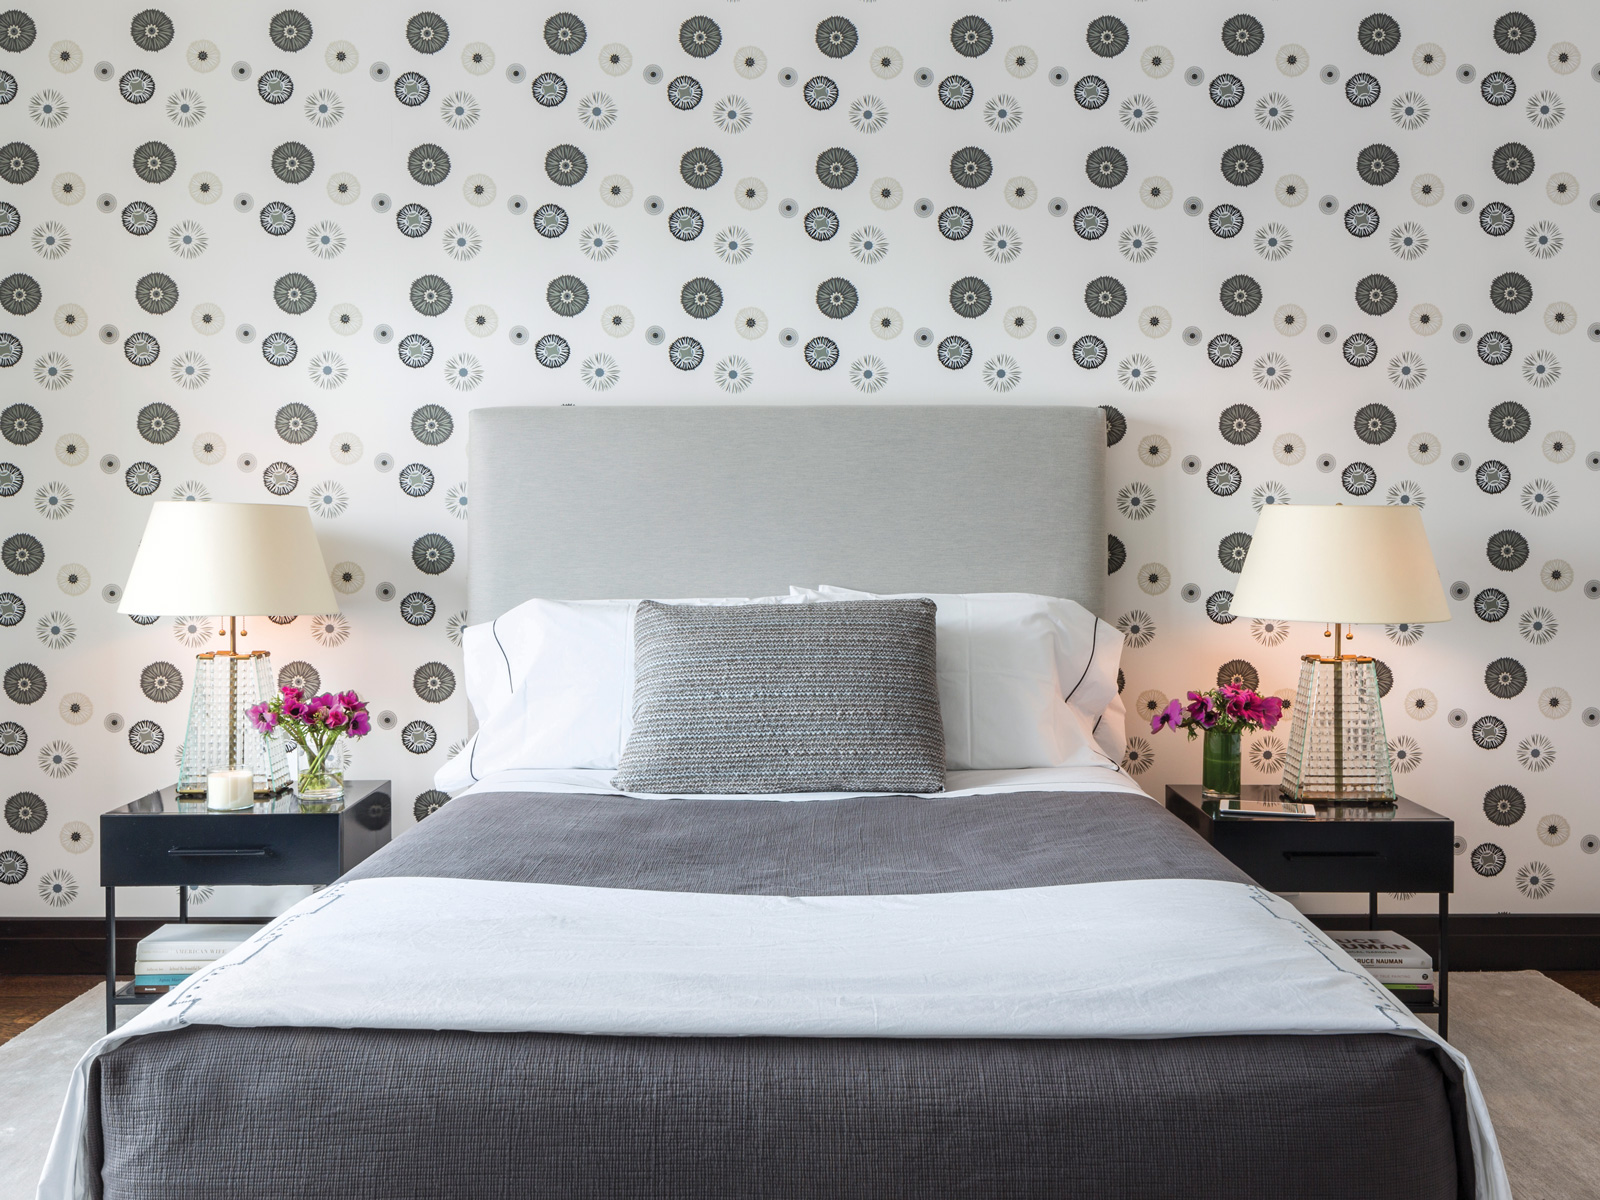 Story's own Kimono wallcovering in a guest bedroom make inexpensive bedside tables from CB2 (refinished in black laquer) pop. Robert Altman lamps and linens by Anichini and Julia B deliver the luxe elements.